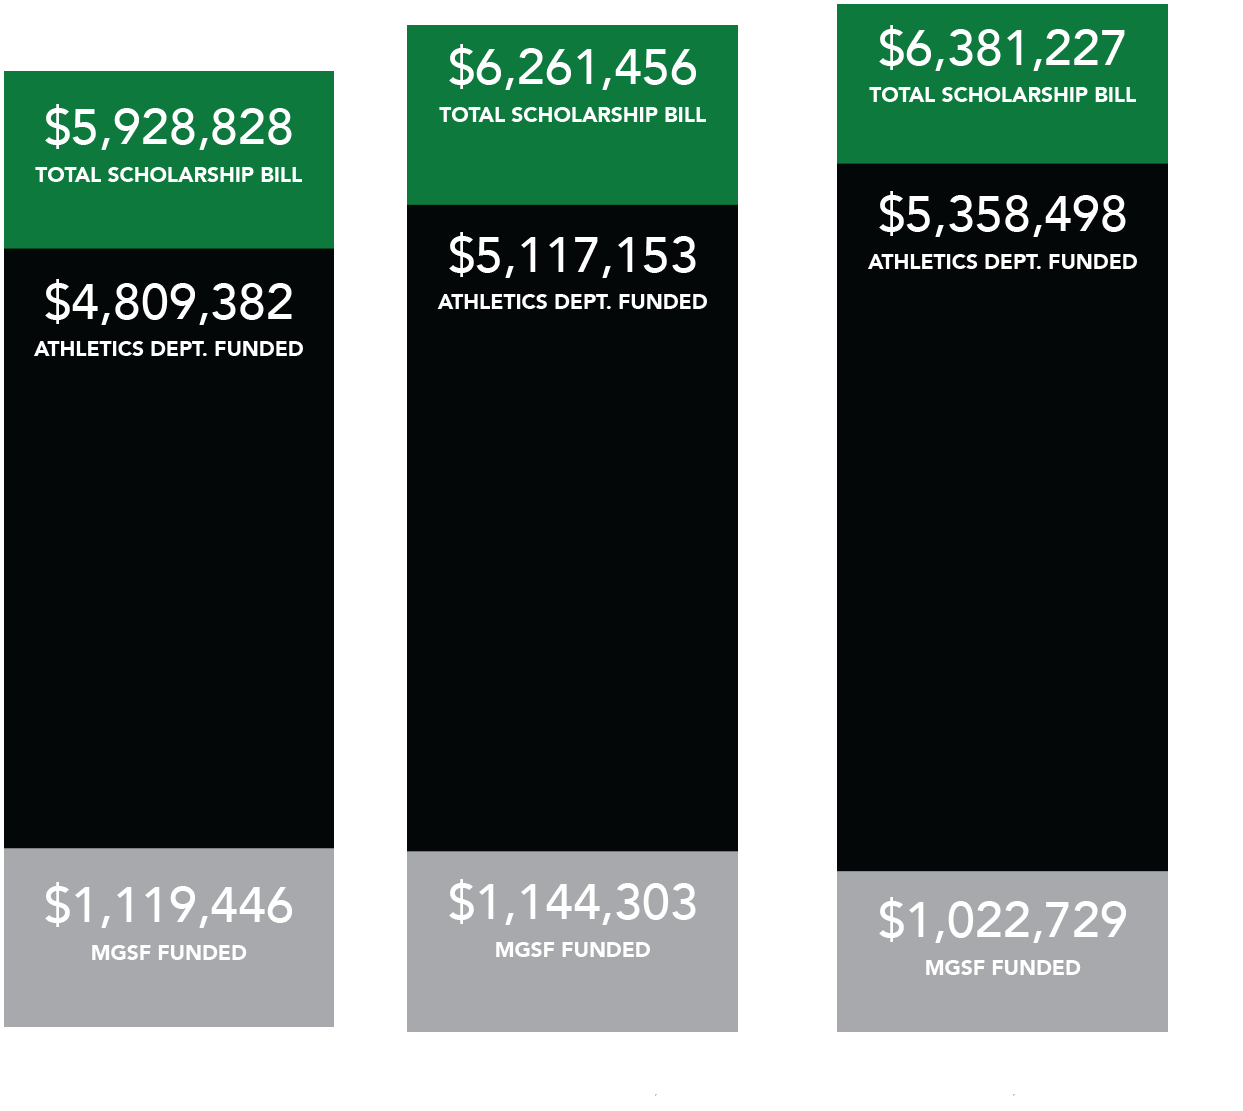 Bar Chart displaying annual scholarship costs from 2017-2020. In 2017-18, the total scholarship bill was $5,928,828, the North Texas athletic department funded $4,809,382 and the MGSF funded $1,119,446. In 2018-19, the total scholarship bill was $6,261,456, the North Texas athletic department funded $5,117,153 and the MGSF funded $1,144,303. In 2019-20, the total scholarship bill was $6,381,227, the North Texas athletic department funded $5,358,498 and the MGSF funded $1,022,729.